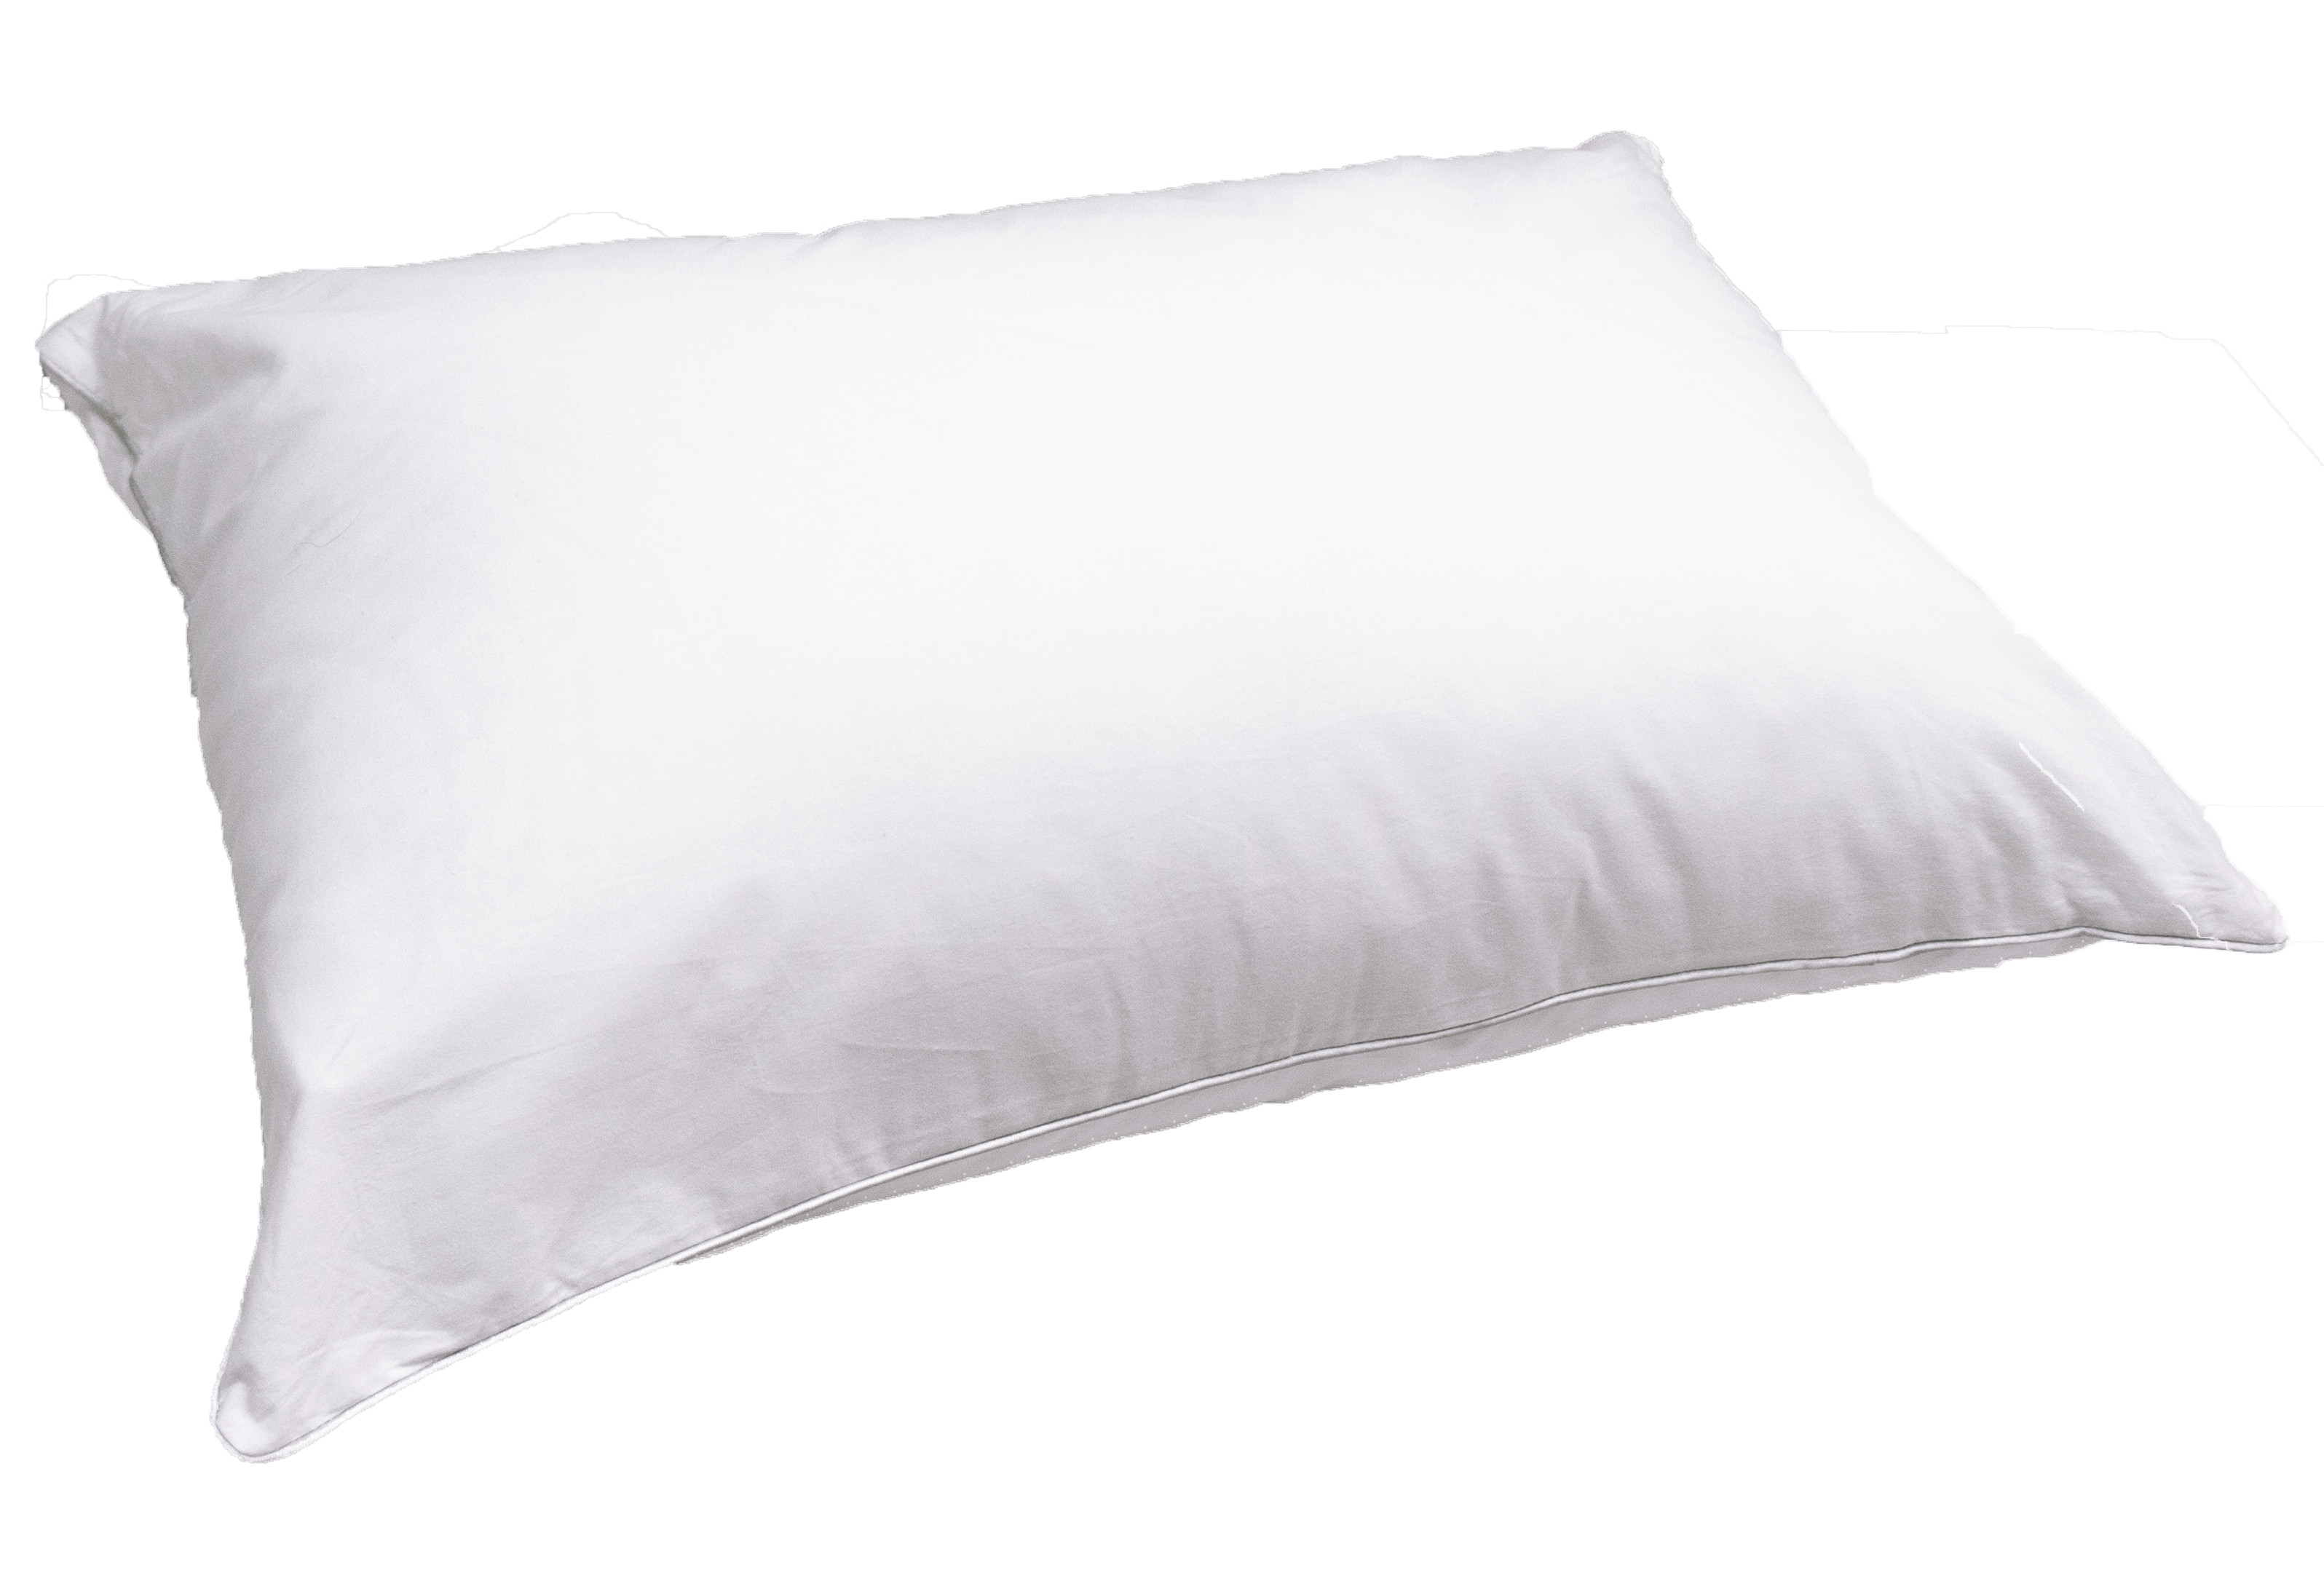 Shop our Bed Pillows inventory